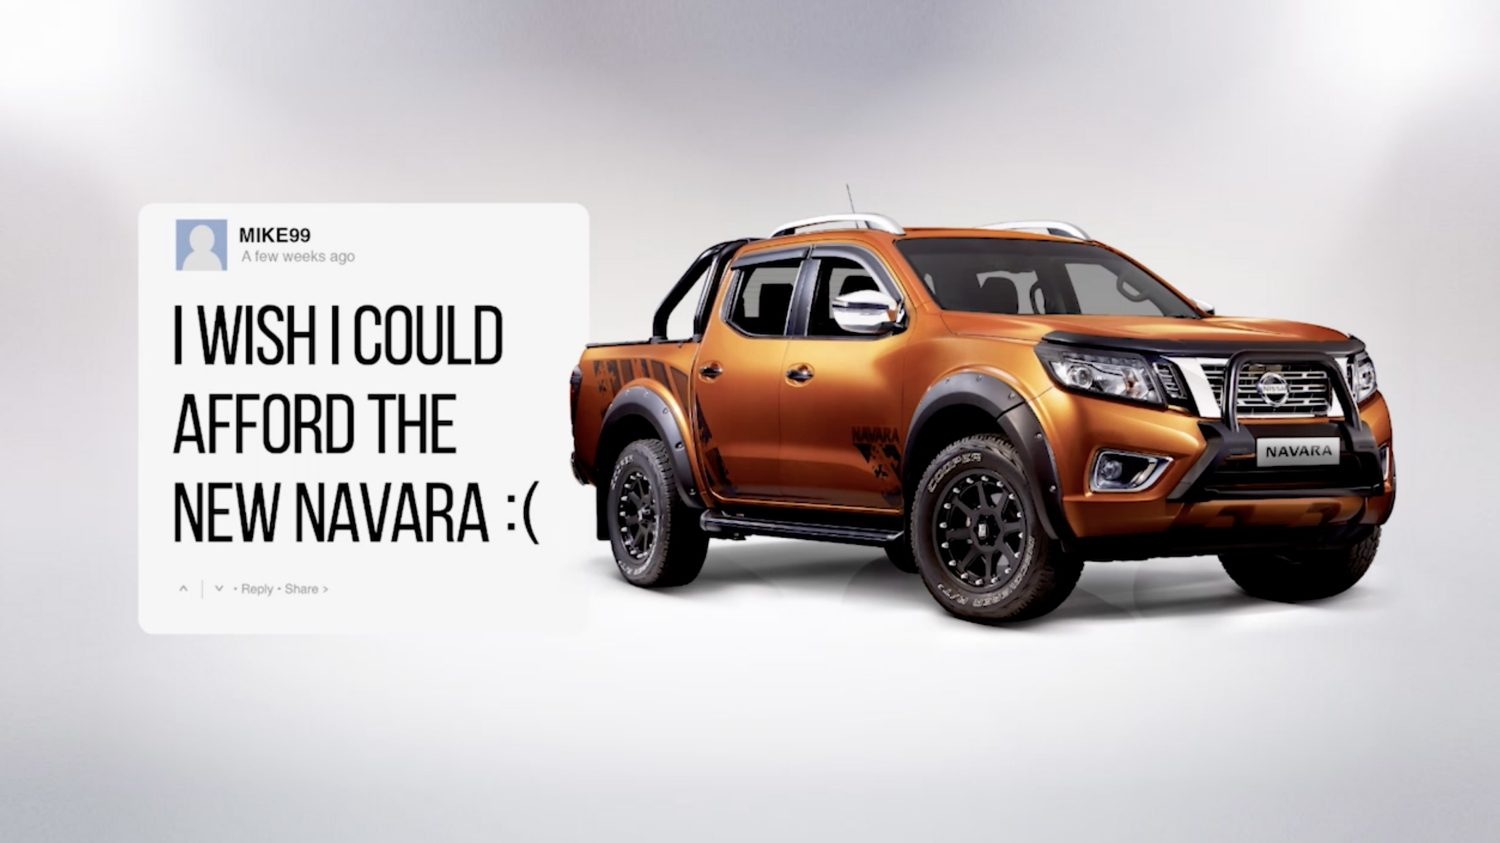 I wish I could afford the New Navara :(